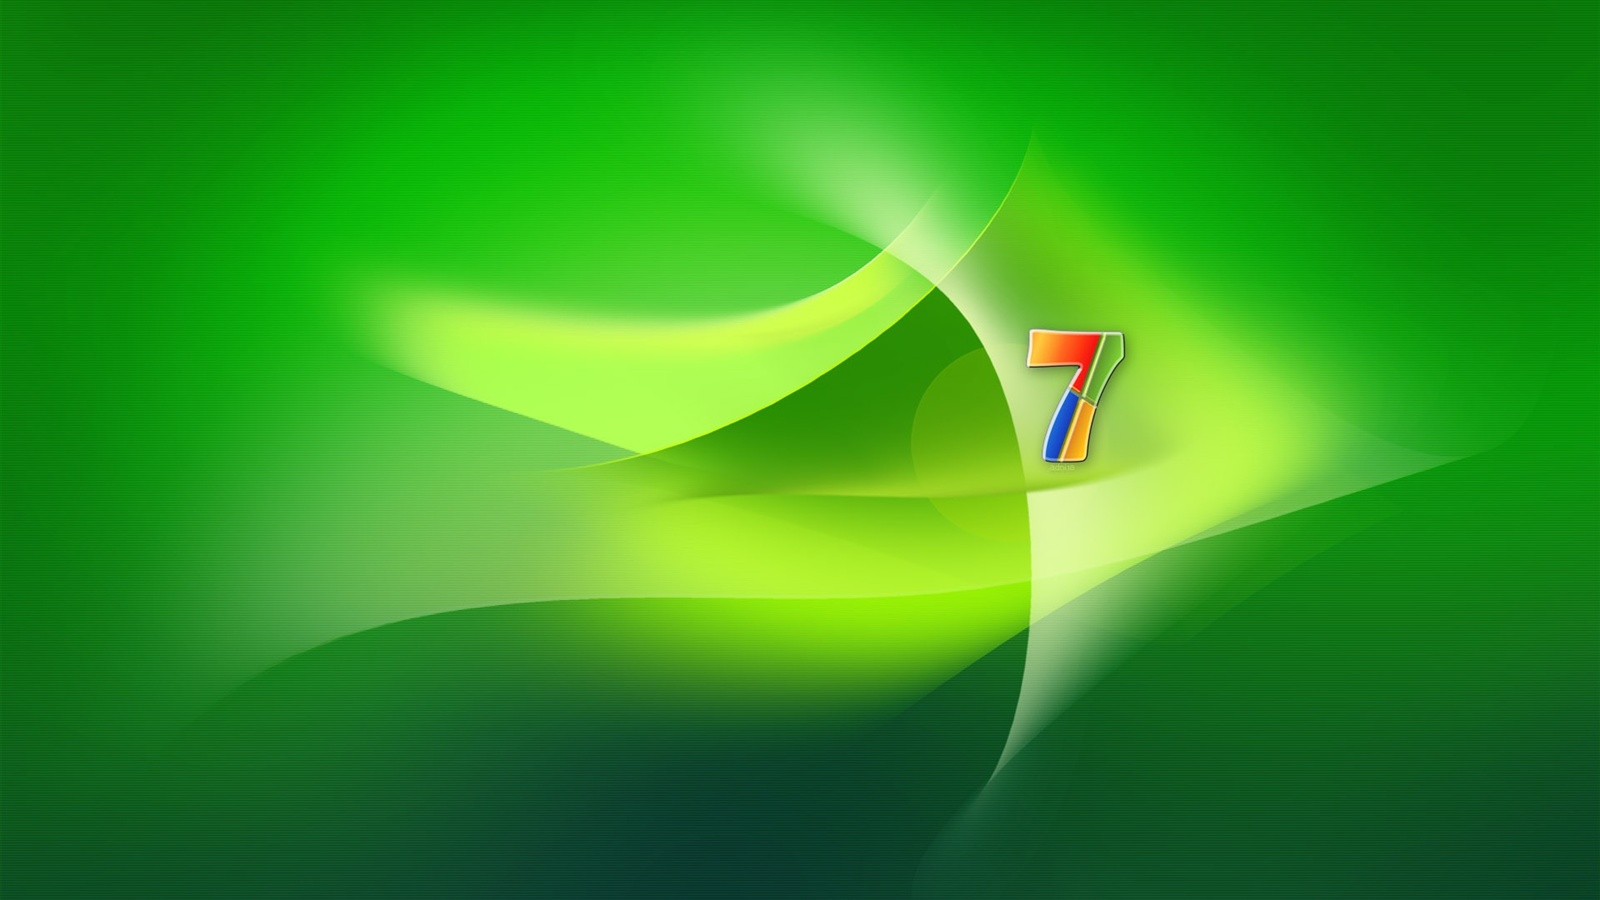 Wallpaper windows 7 green space 1920x1200 hd picture image - Windows 7 space wallpaper ...